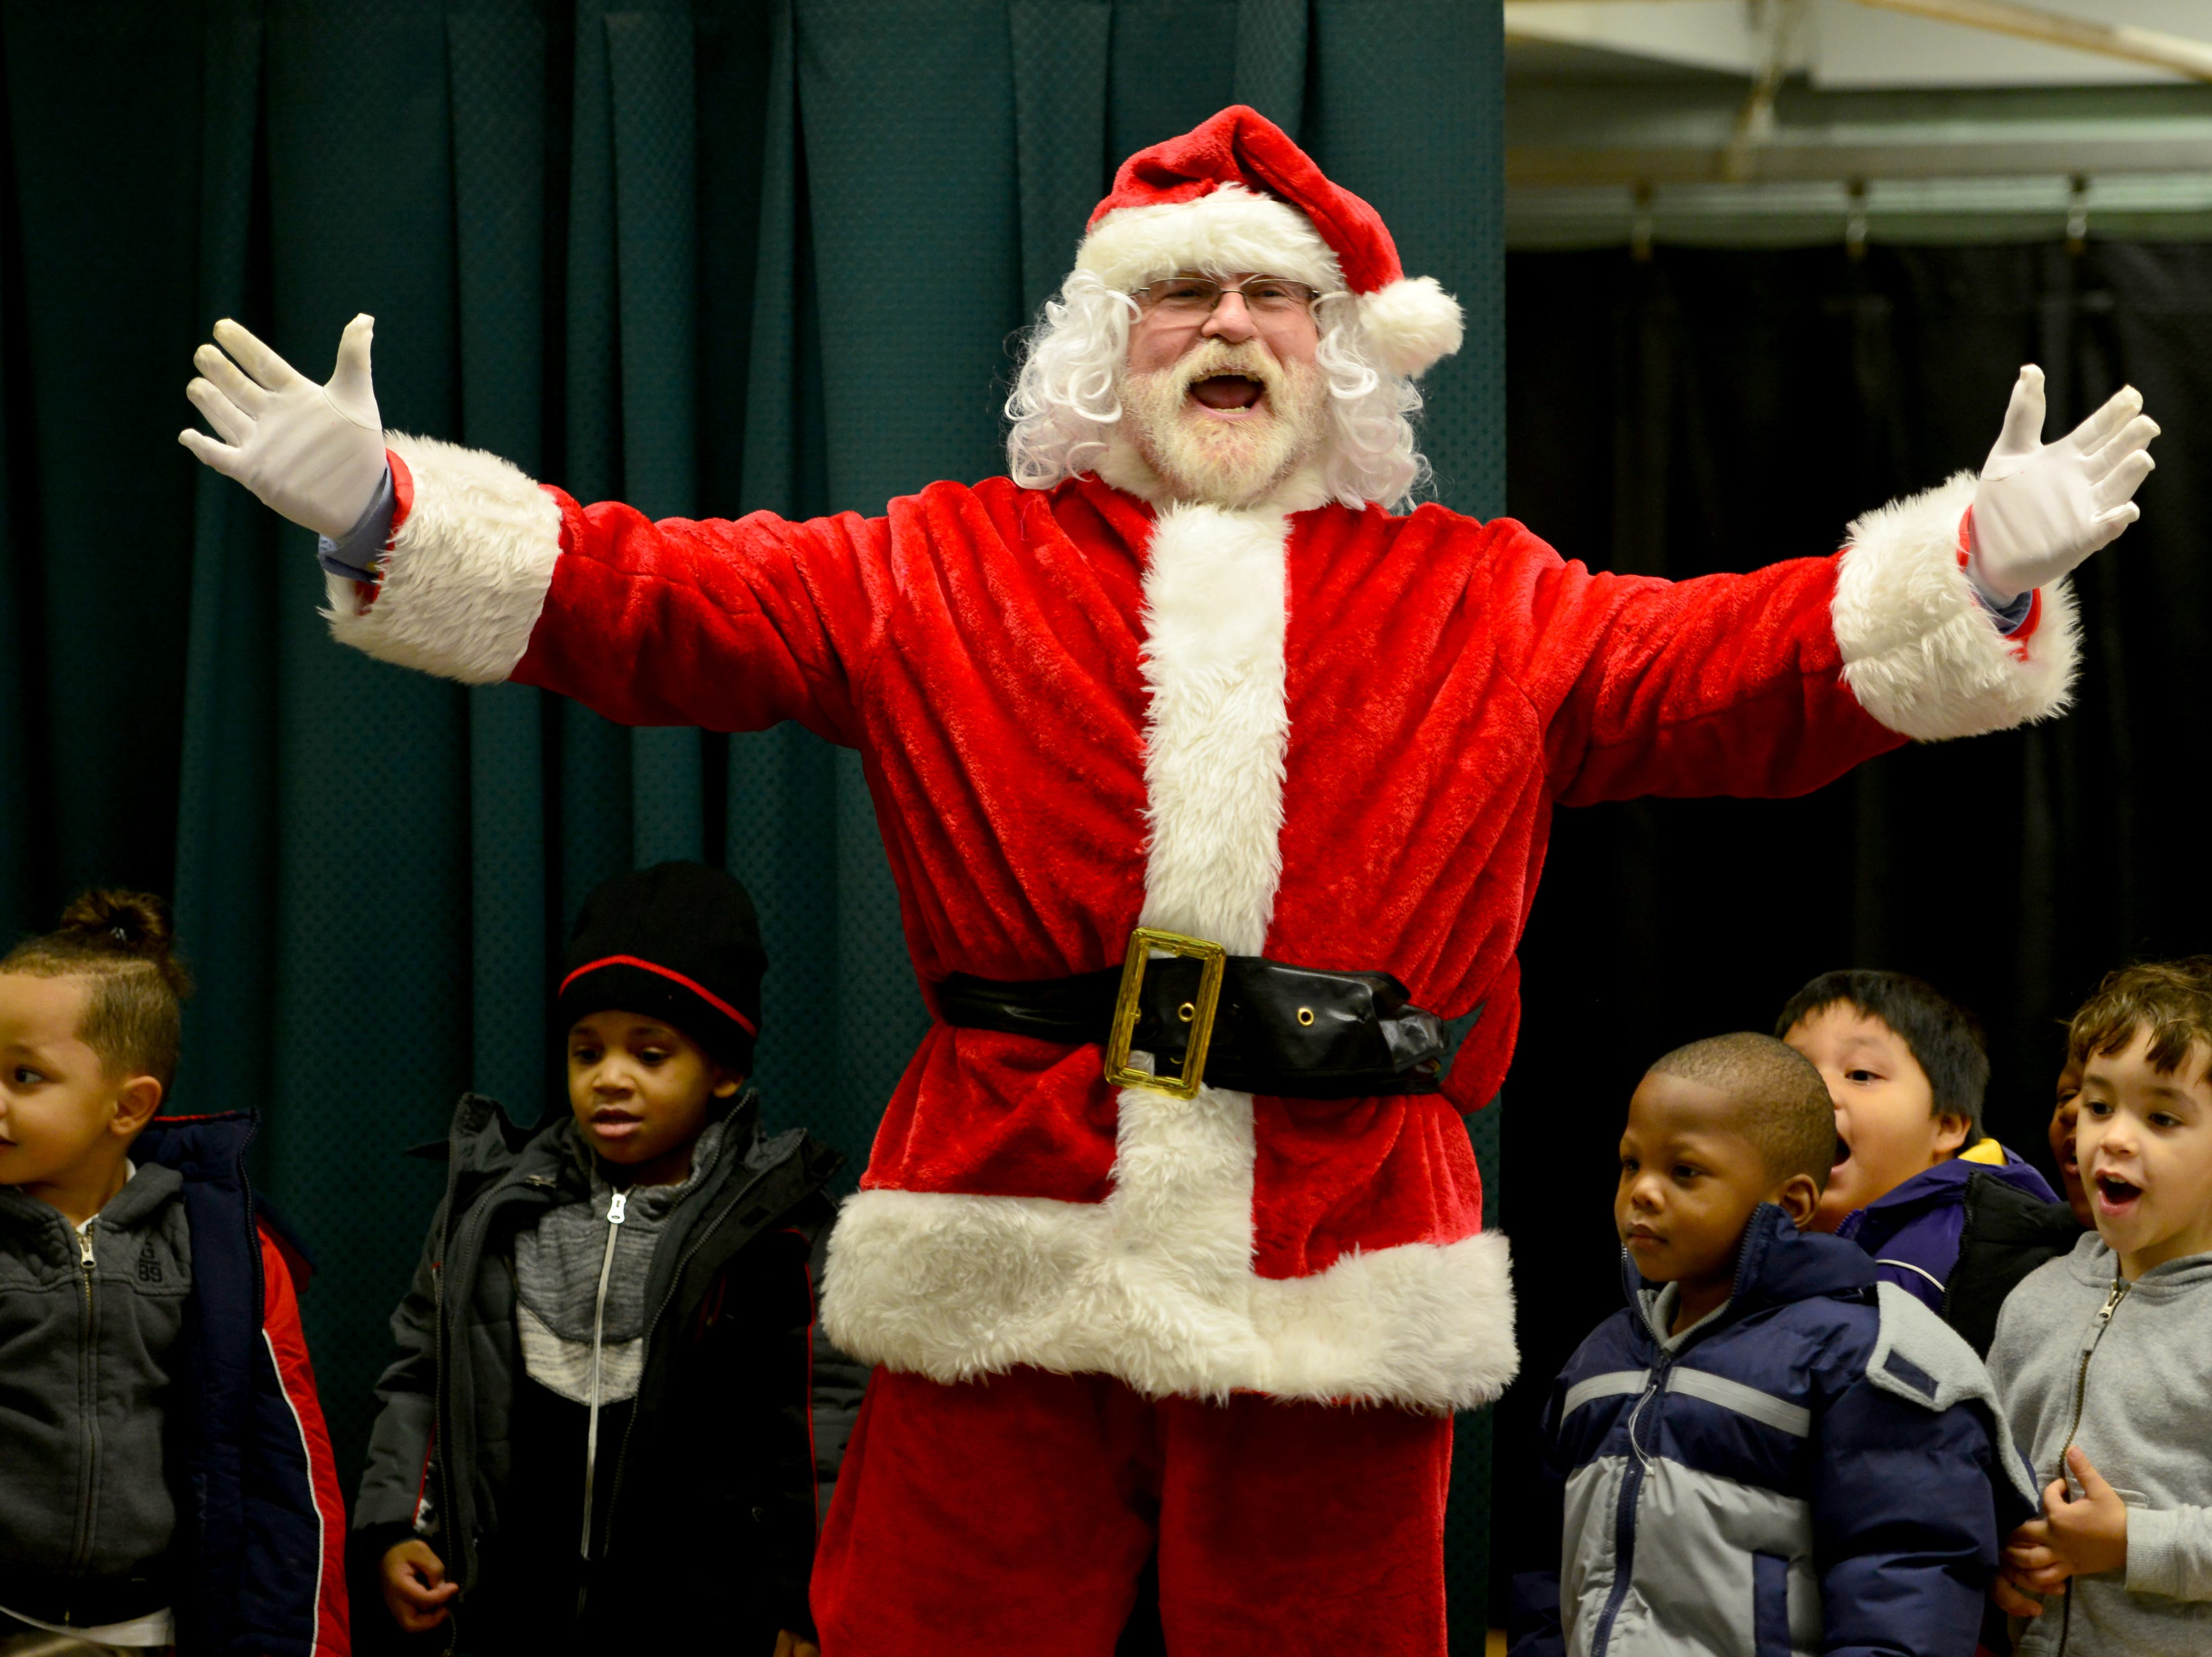 Jamie Dyke, a member of the Rotary dressed as Santa Claus, wishes the students a Merry Christmas. The Paterson Rotary held their eighth annual Christmas Coat Drive in Paterson, on Monday morning December 17, 2018. The club donated coats to all the students at Edward W. Kilpatrick Elementary School. The Rotary Club raised funds from its members and the community to buy 380 coats for the students.